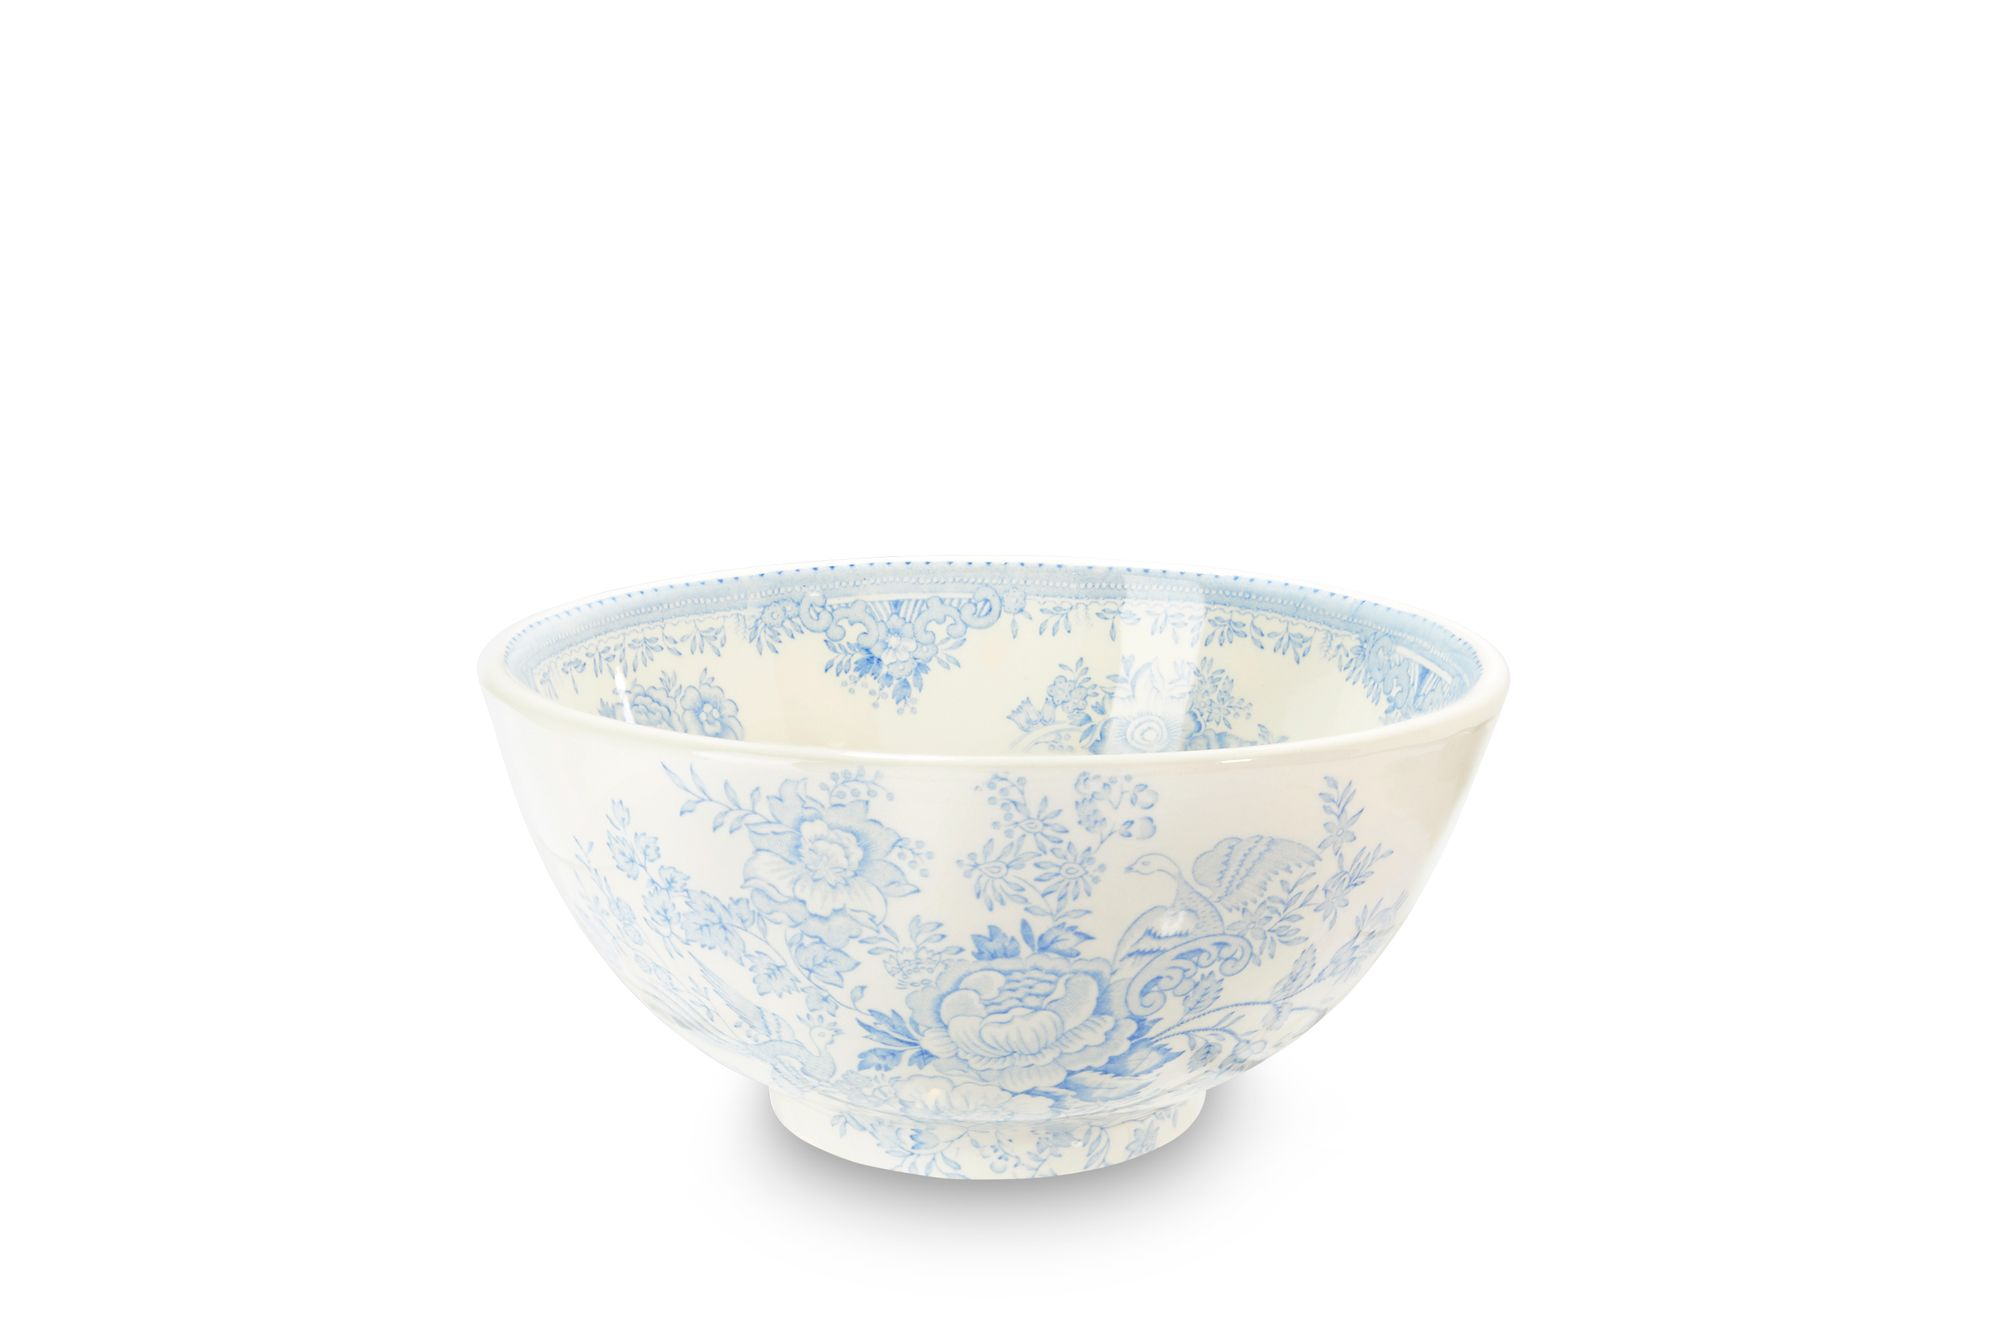 "Burleigh Blue Asiatic Pheasants Medium Footed Bowl 8"" thumb 1"